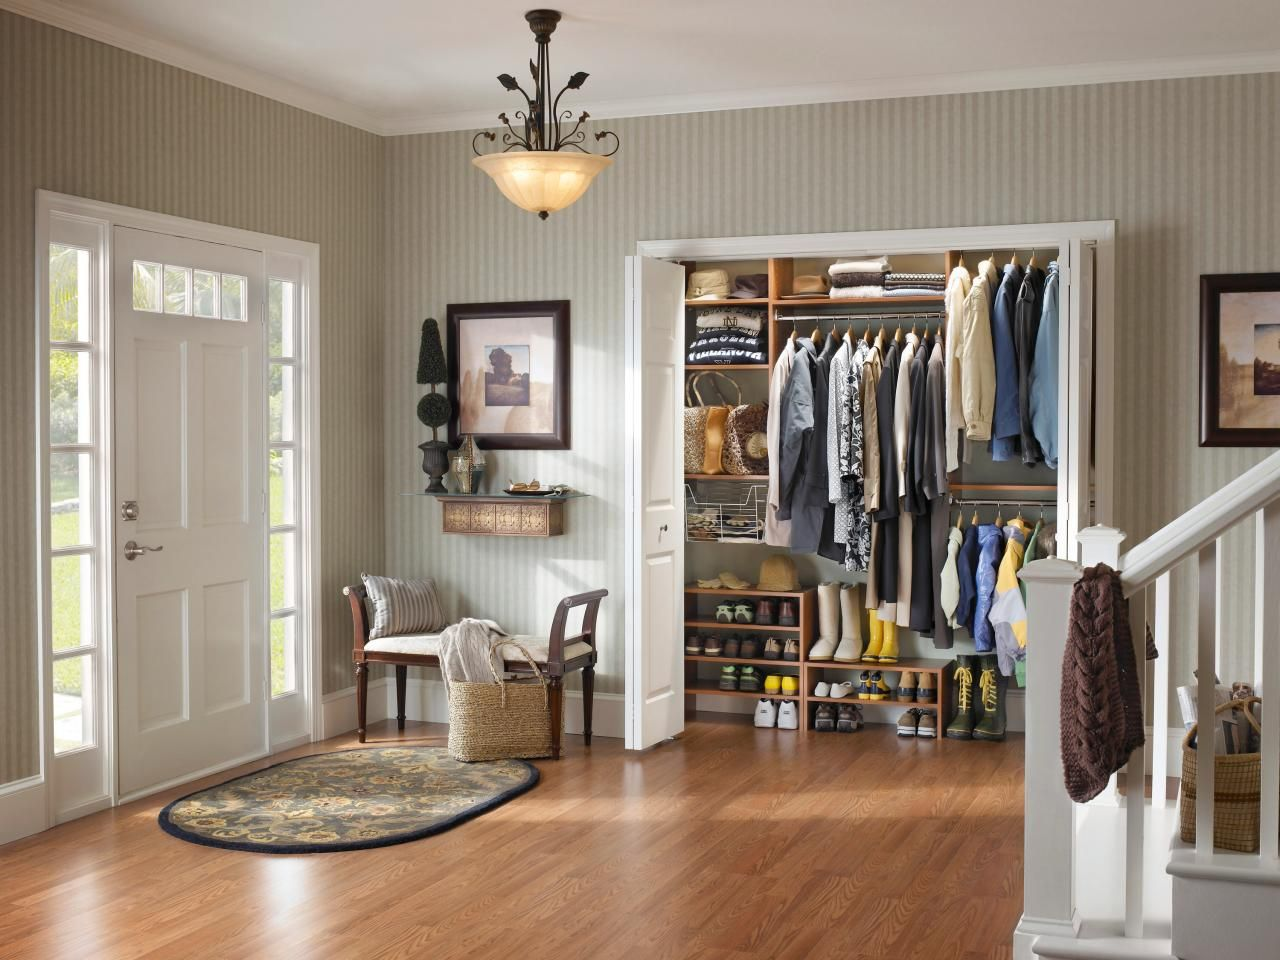 Living Room Closet Design Brilliant 10 Stylish Reachin Closets  Hgtv Foyers And Clutter 2018